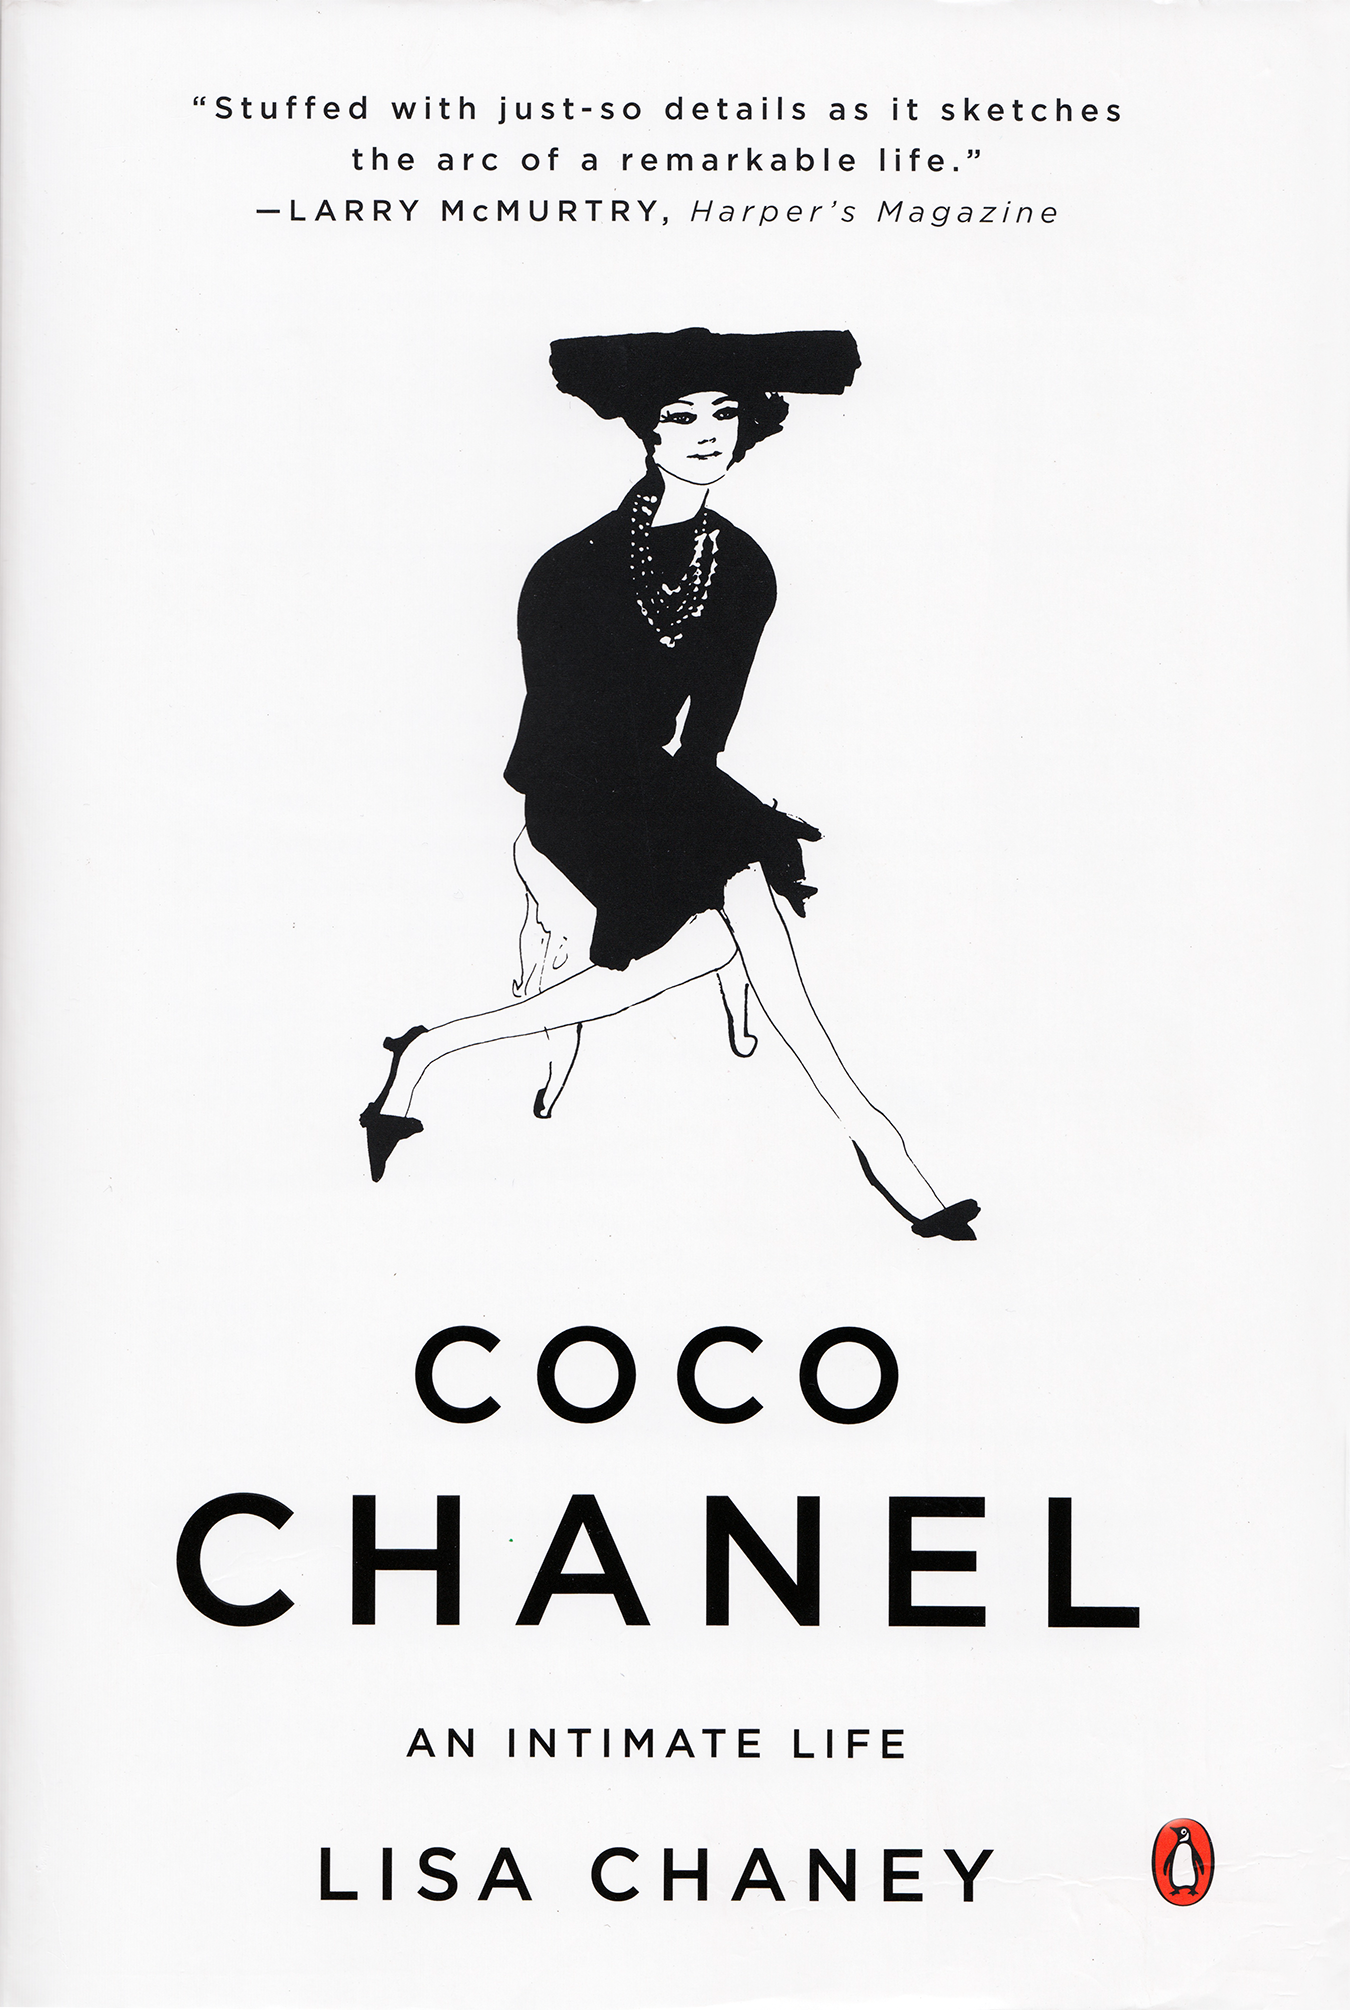 Lisa Chaney, Coco Chanel: An Intimate Life, Penguin Books